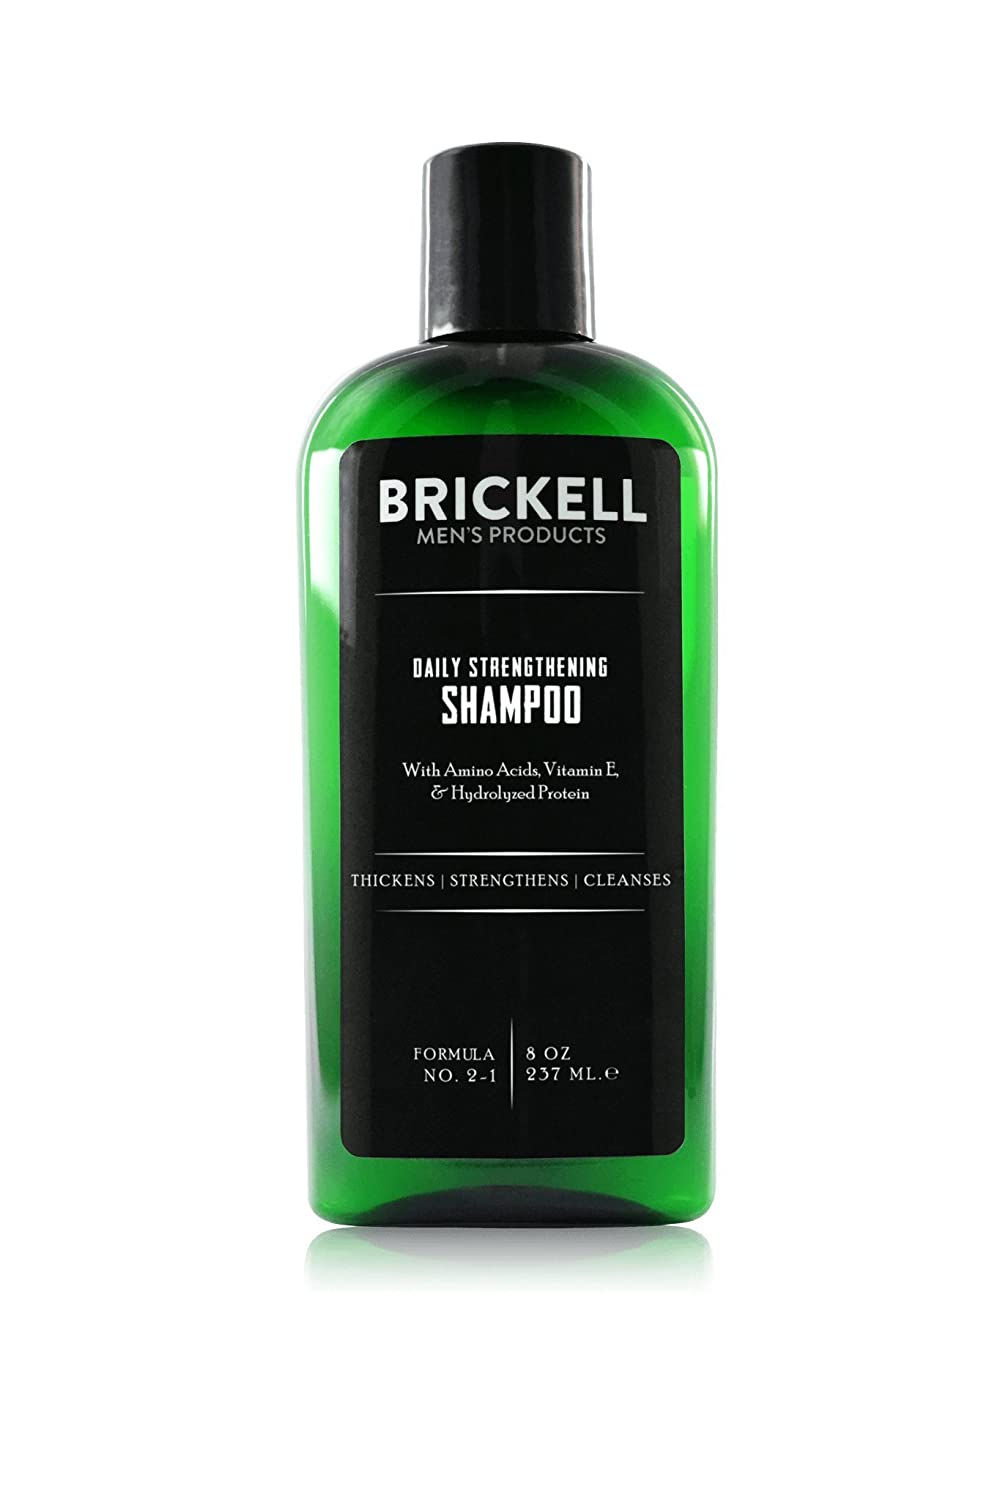 Top 10 Best Shampoo and Conditioner for Curly Hair Men Reviews in 2020 1